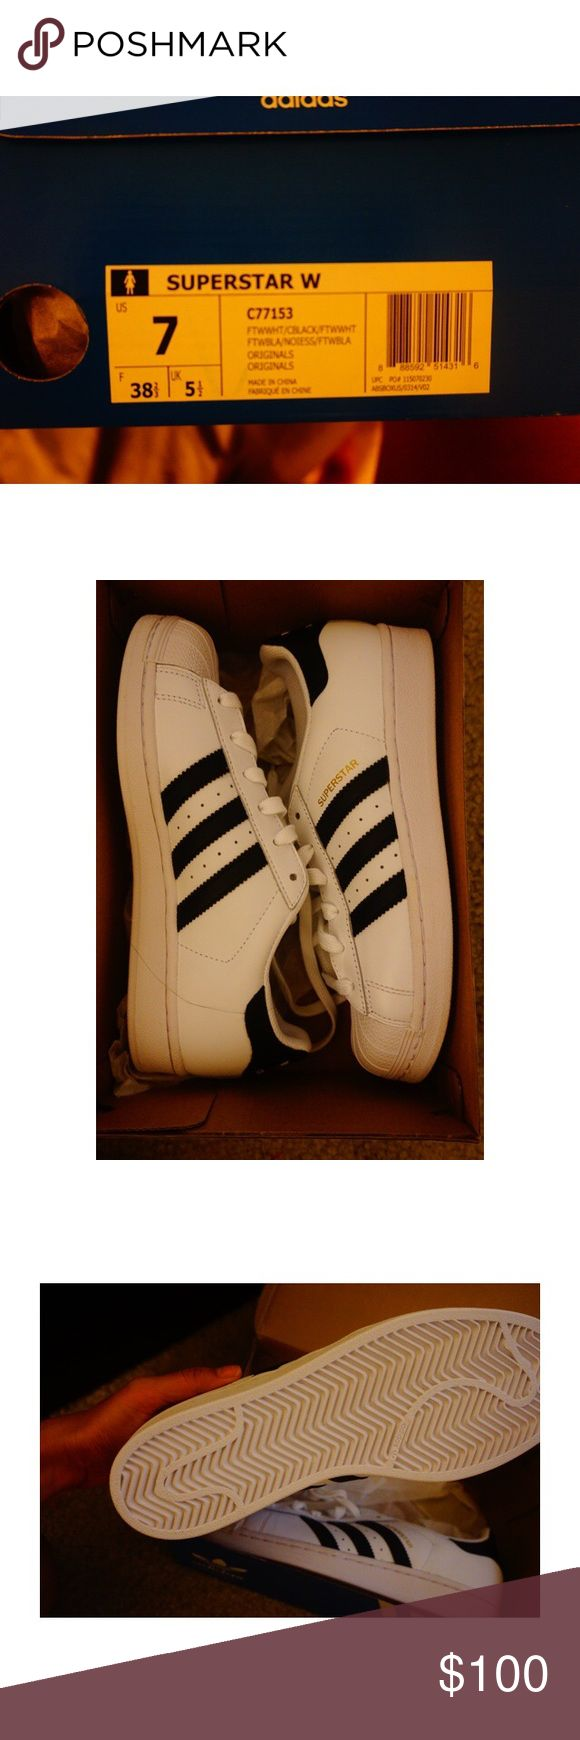 White and black adidas ! (Superstar) BRAND NEW, never worn at all! White and black superstar adidas. Size 7. OBO Adidas Shoes Sneakers